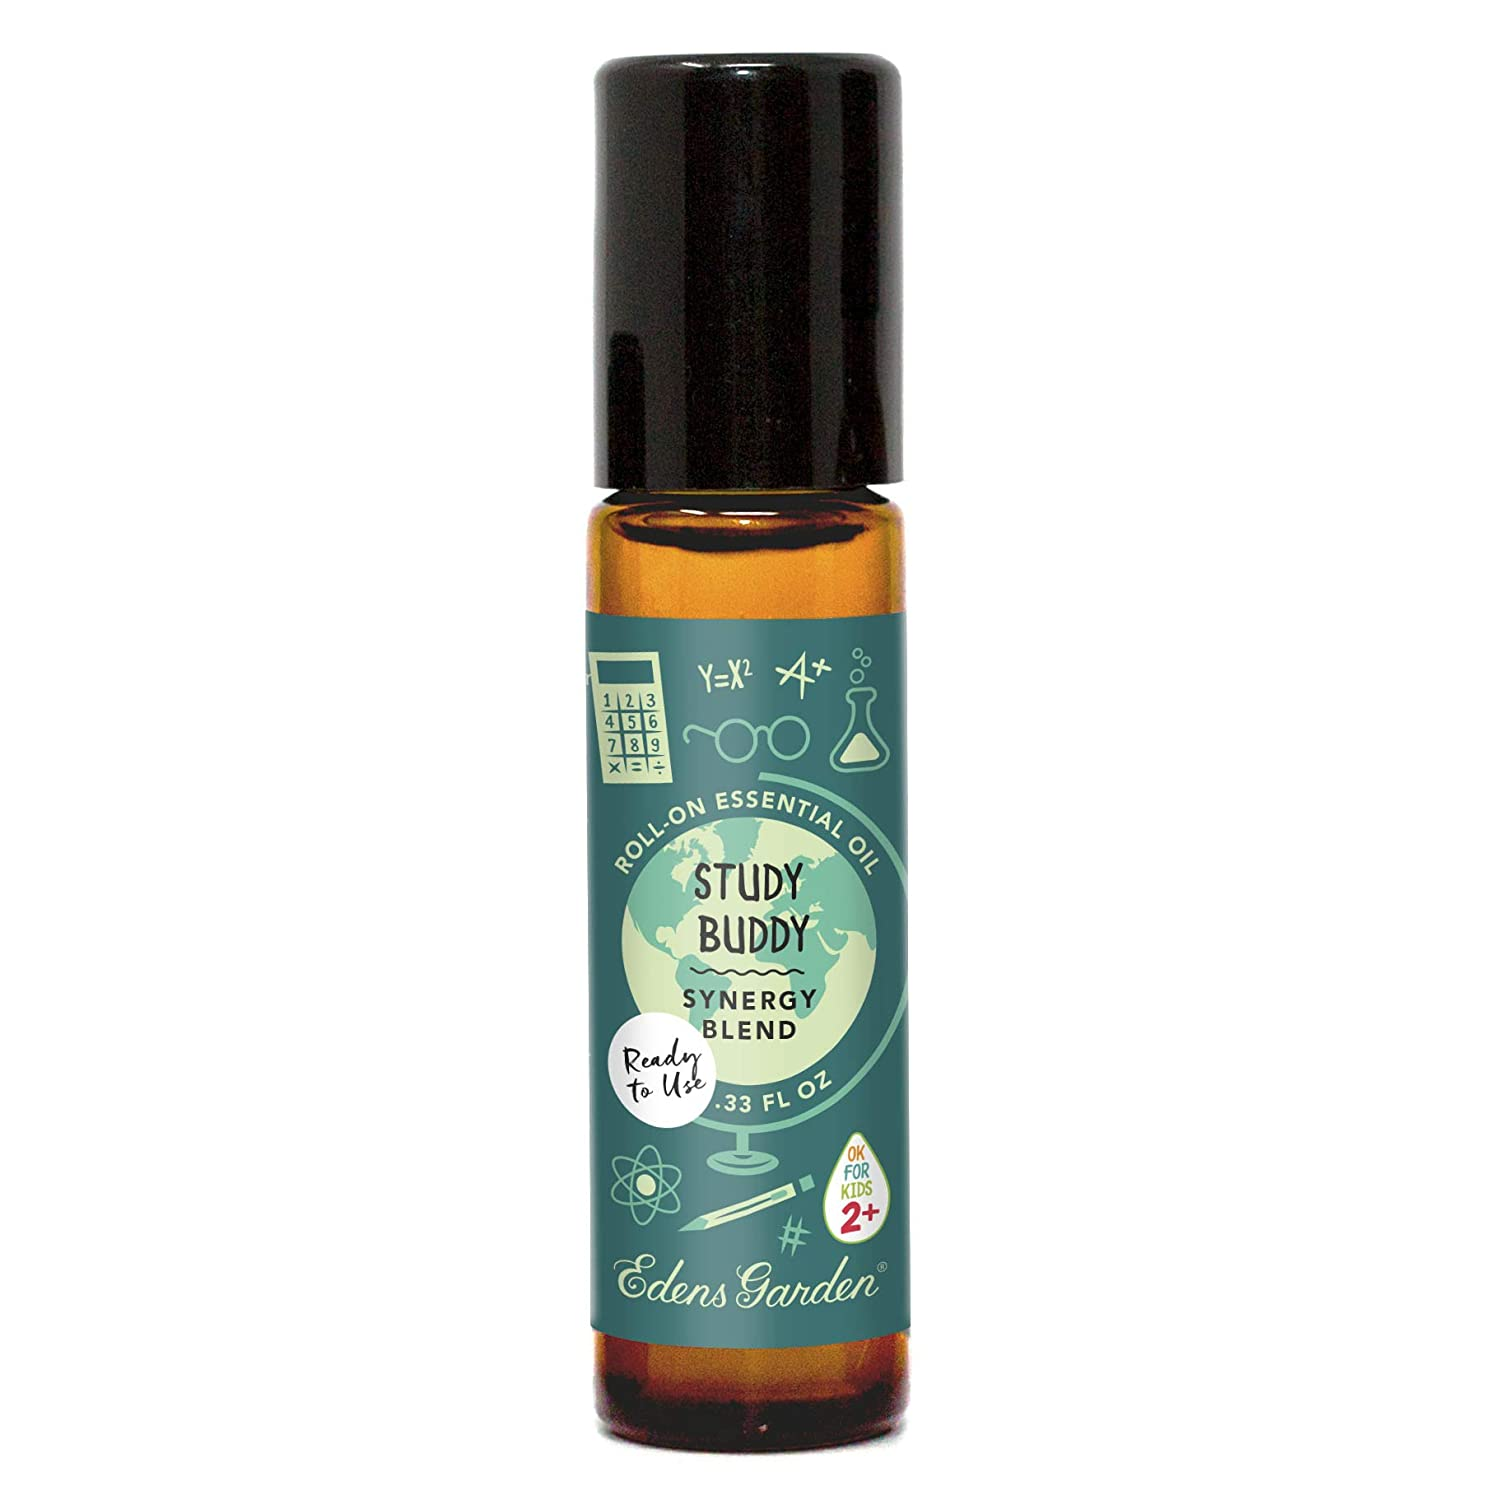 """Edens Garden Study Buddy""""OK For Kids"""" Essential Oil Synergy Blend, 100% Pure Therapeutic Grade (Child Safe 2+, Pre-Diluted & Ready To Use- Cold Flu & Energy), 10 ml Roll-On"""